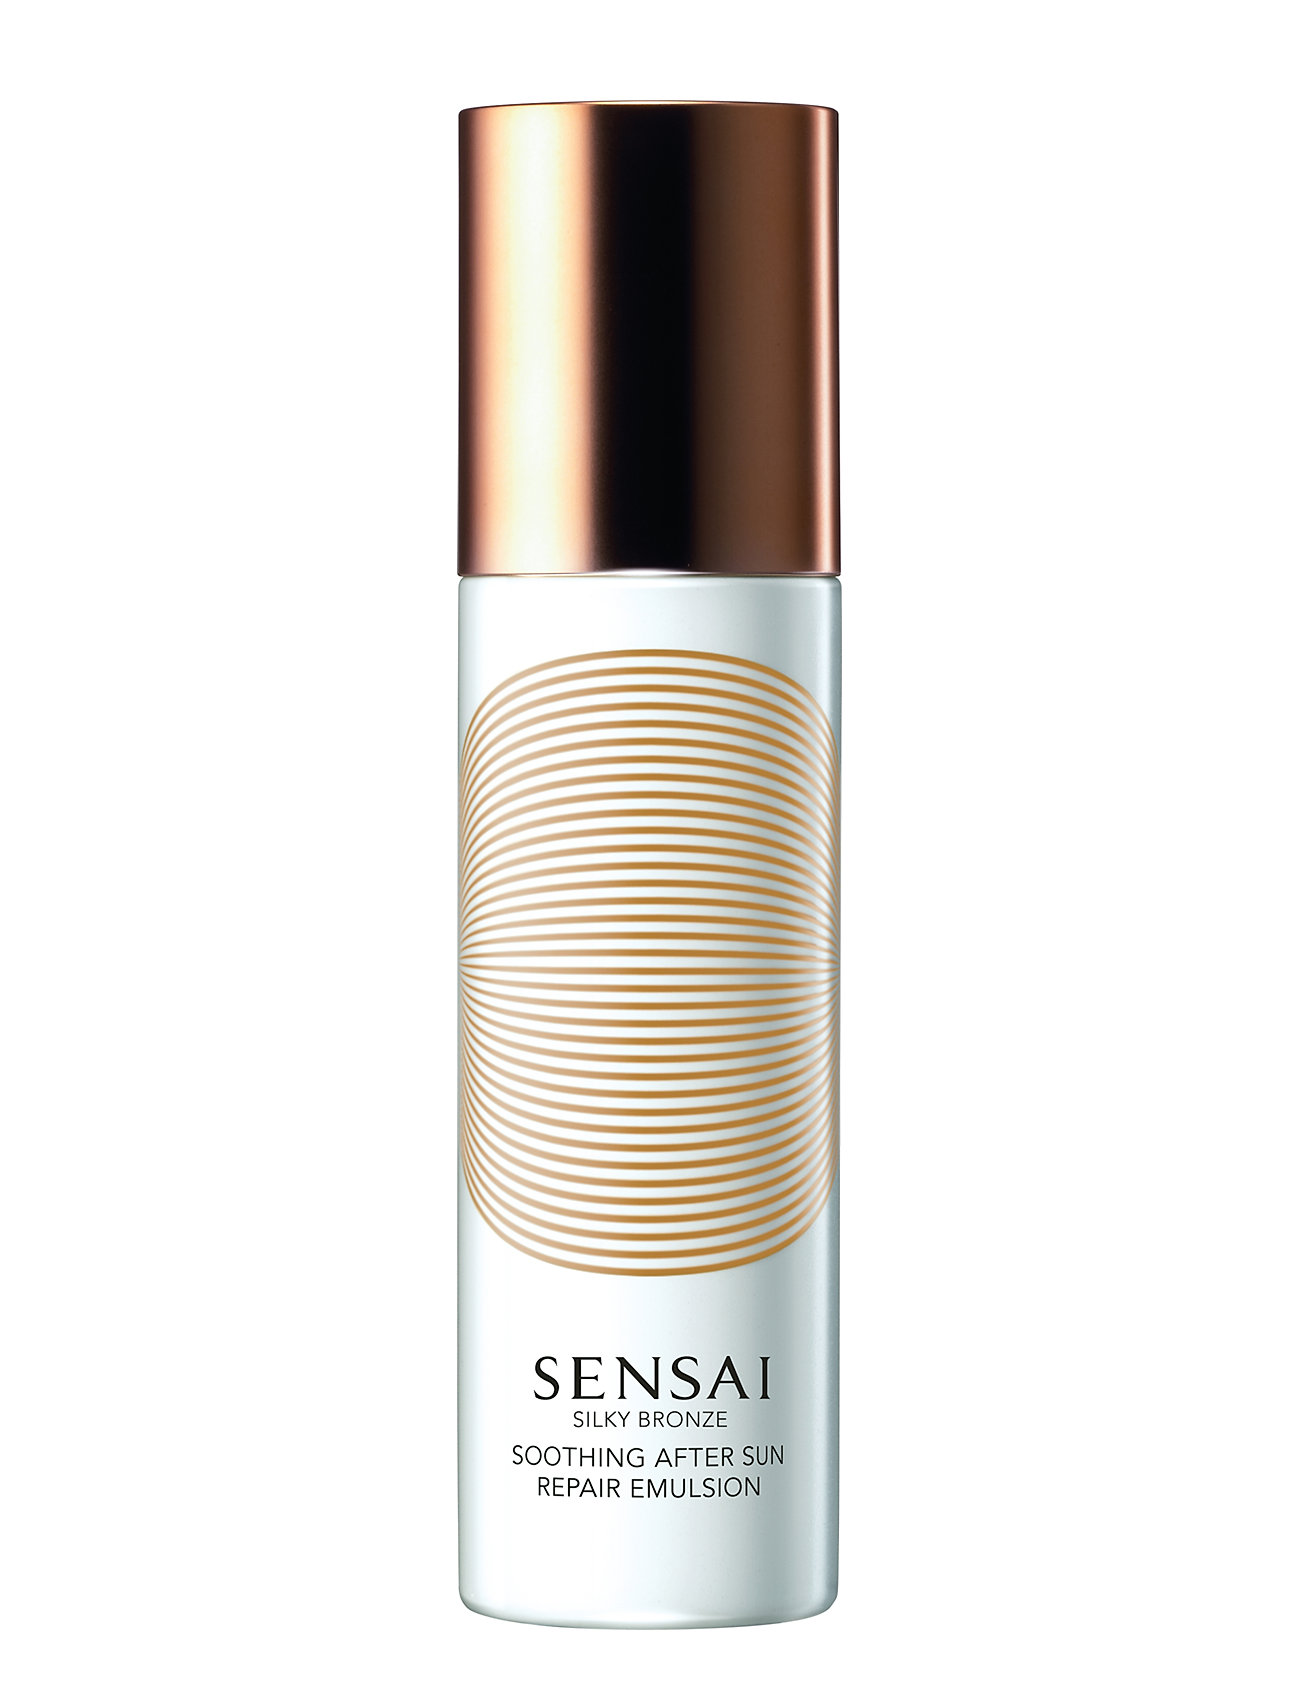 SENSAI Silky Bronze Soothing After Sun Repair Emulsion - NO COLOR